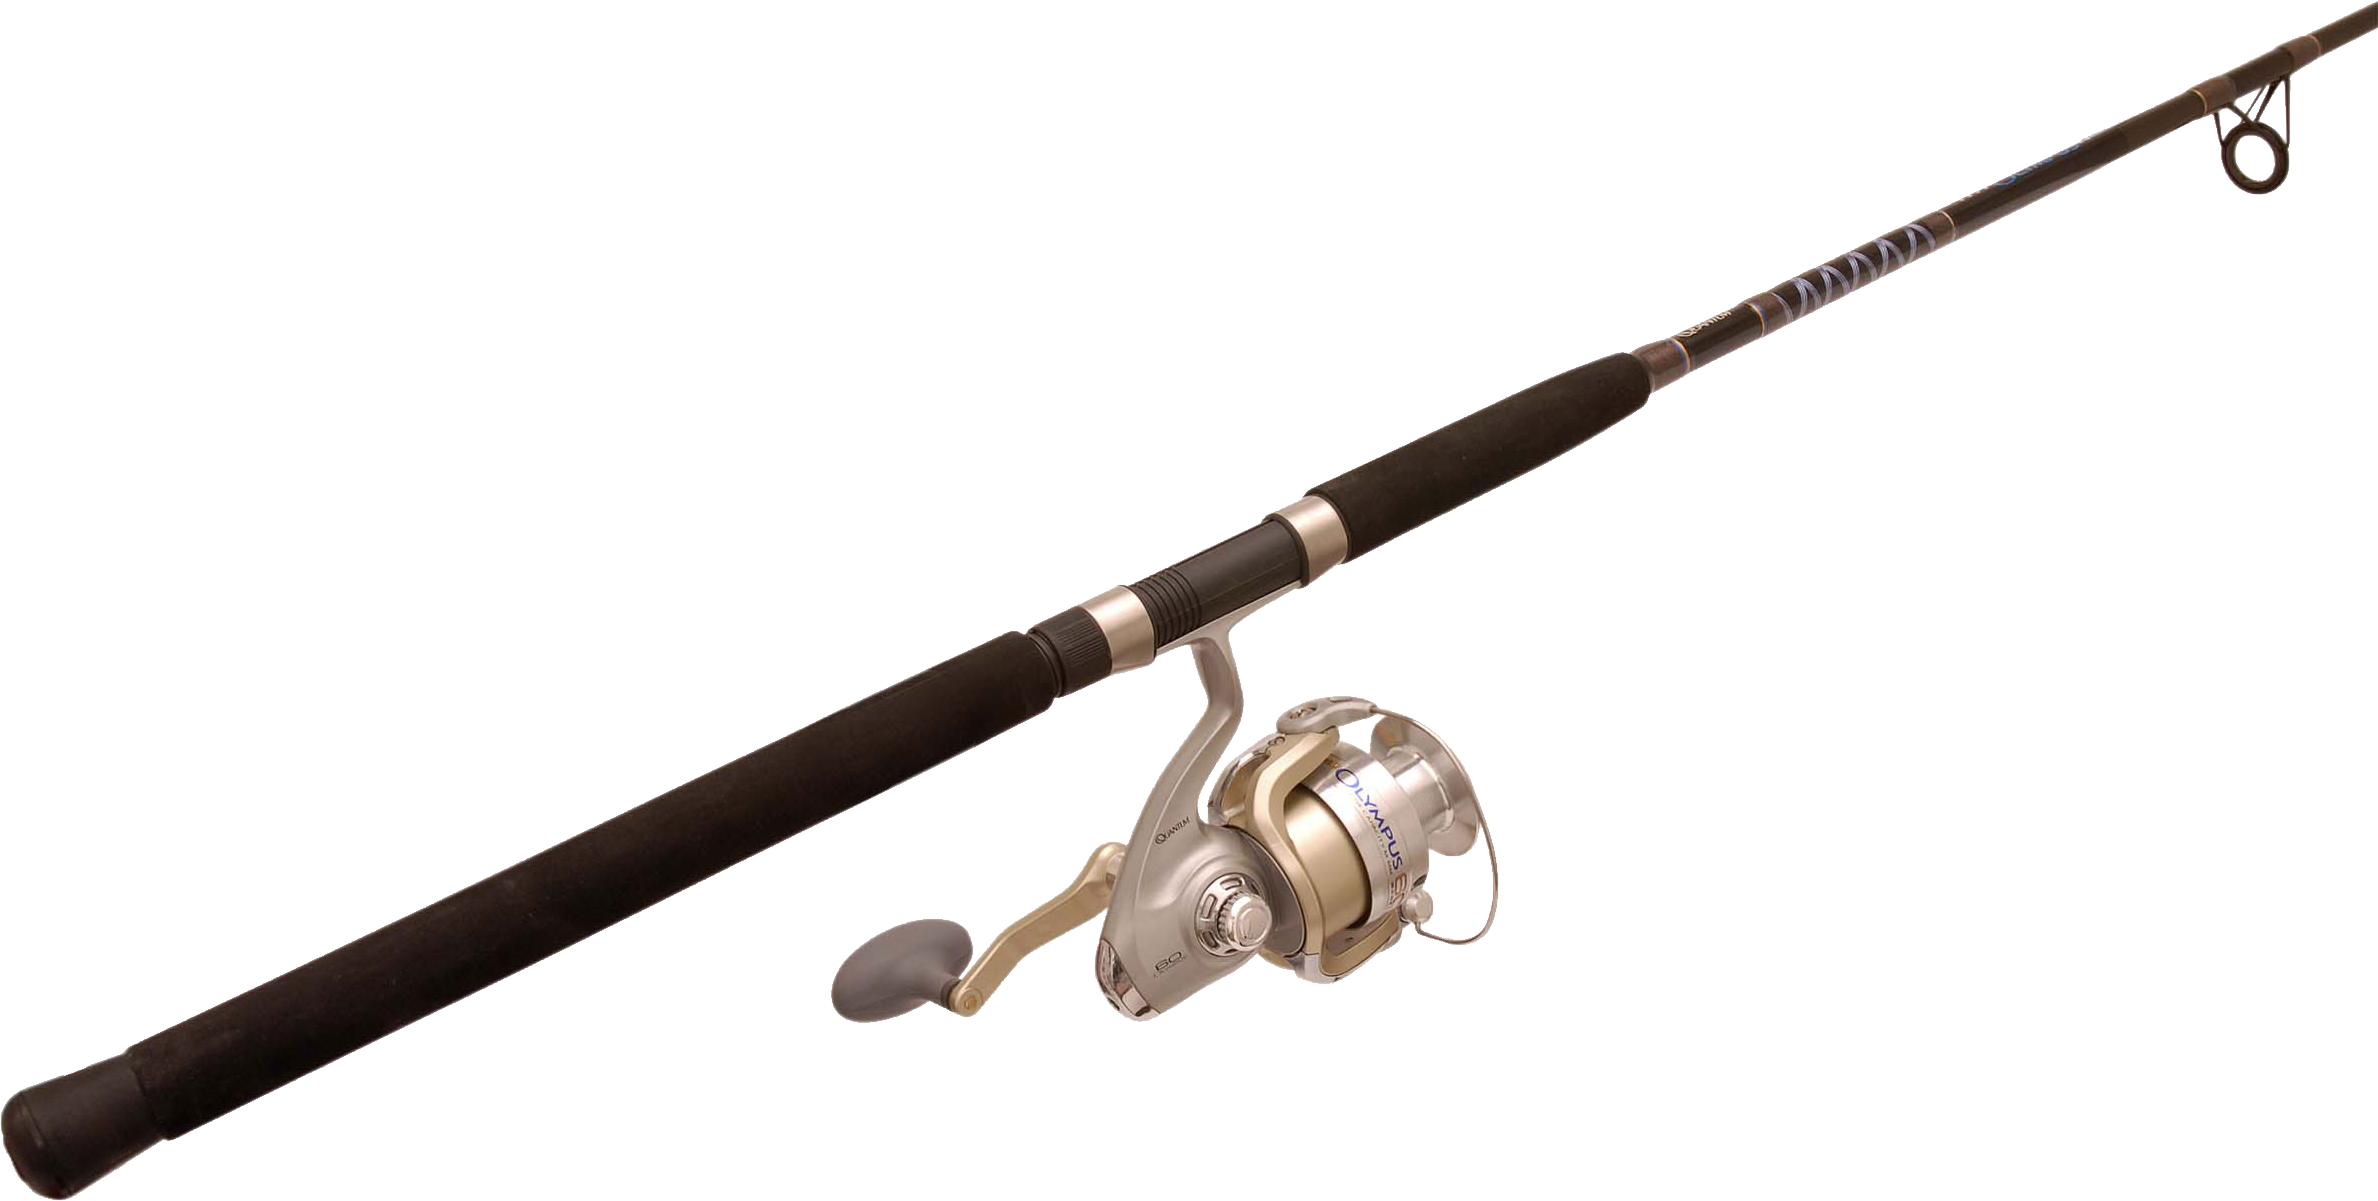 Fishing rod png. Pole images free download